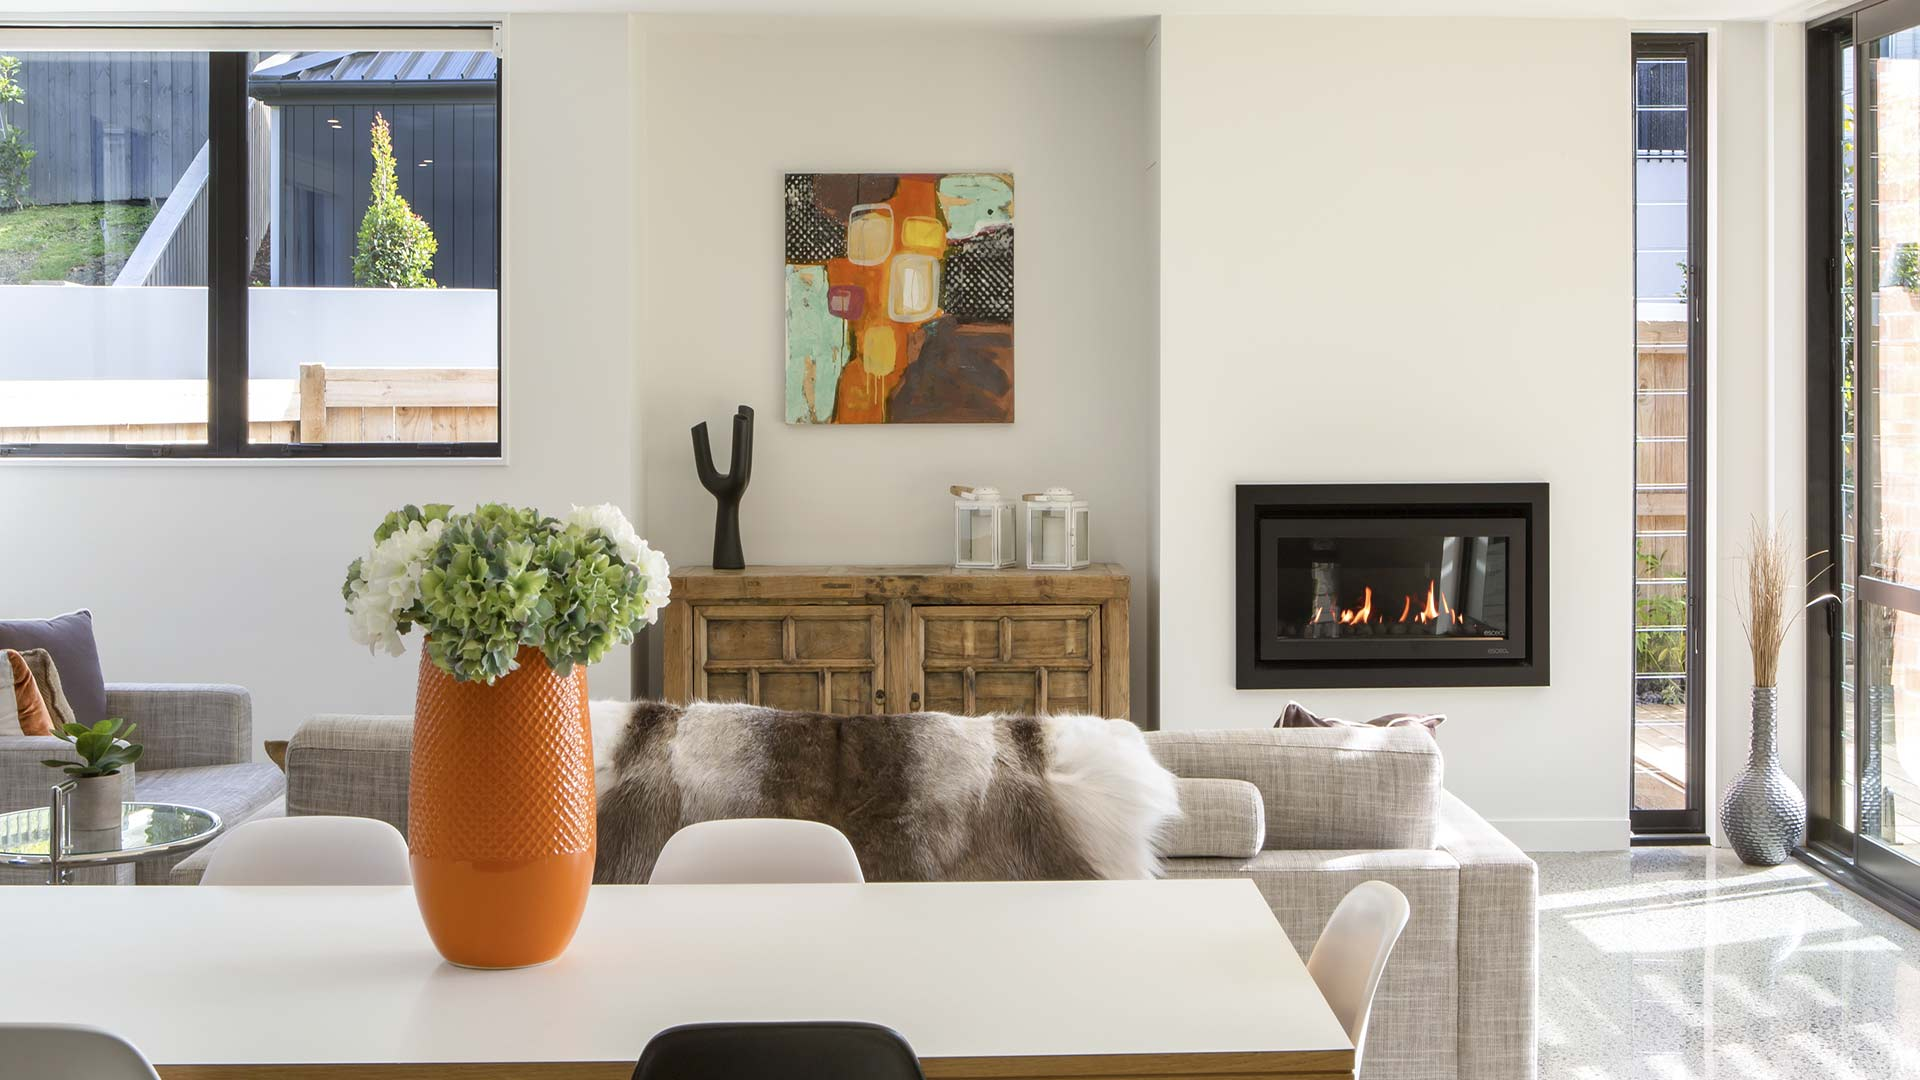 White wall with DL850 gas fireplace